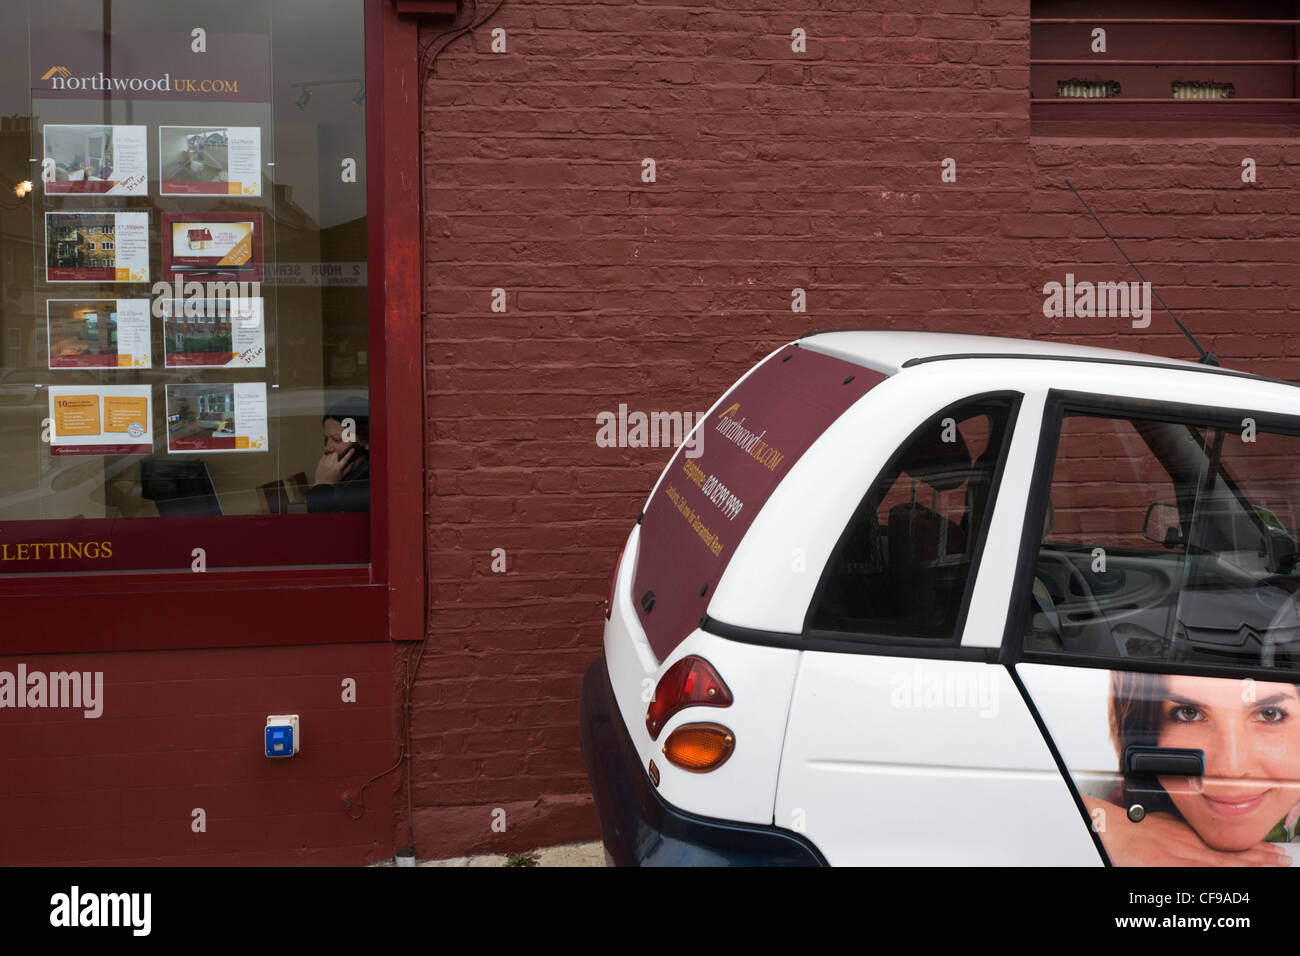 The fantasy of an estate agent's car and the reality of a desk-bound job seen through the office window. - Stock Image